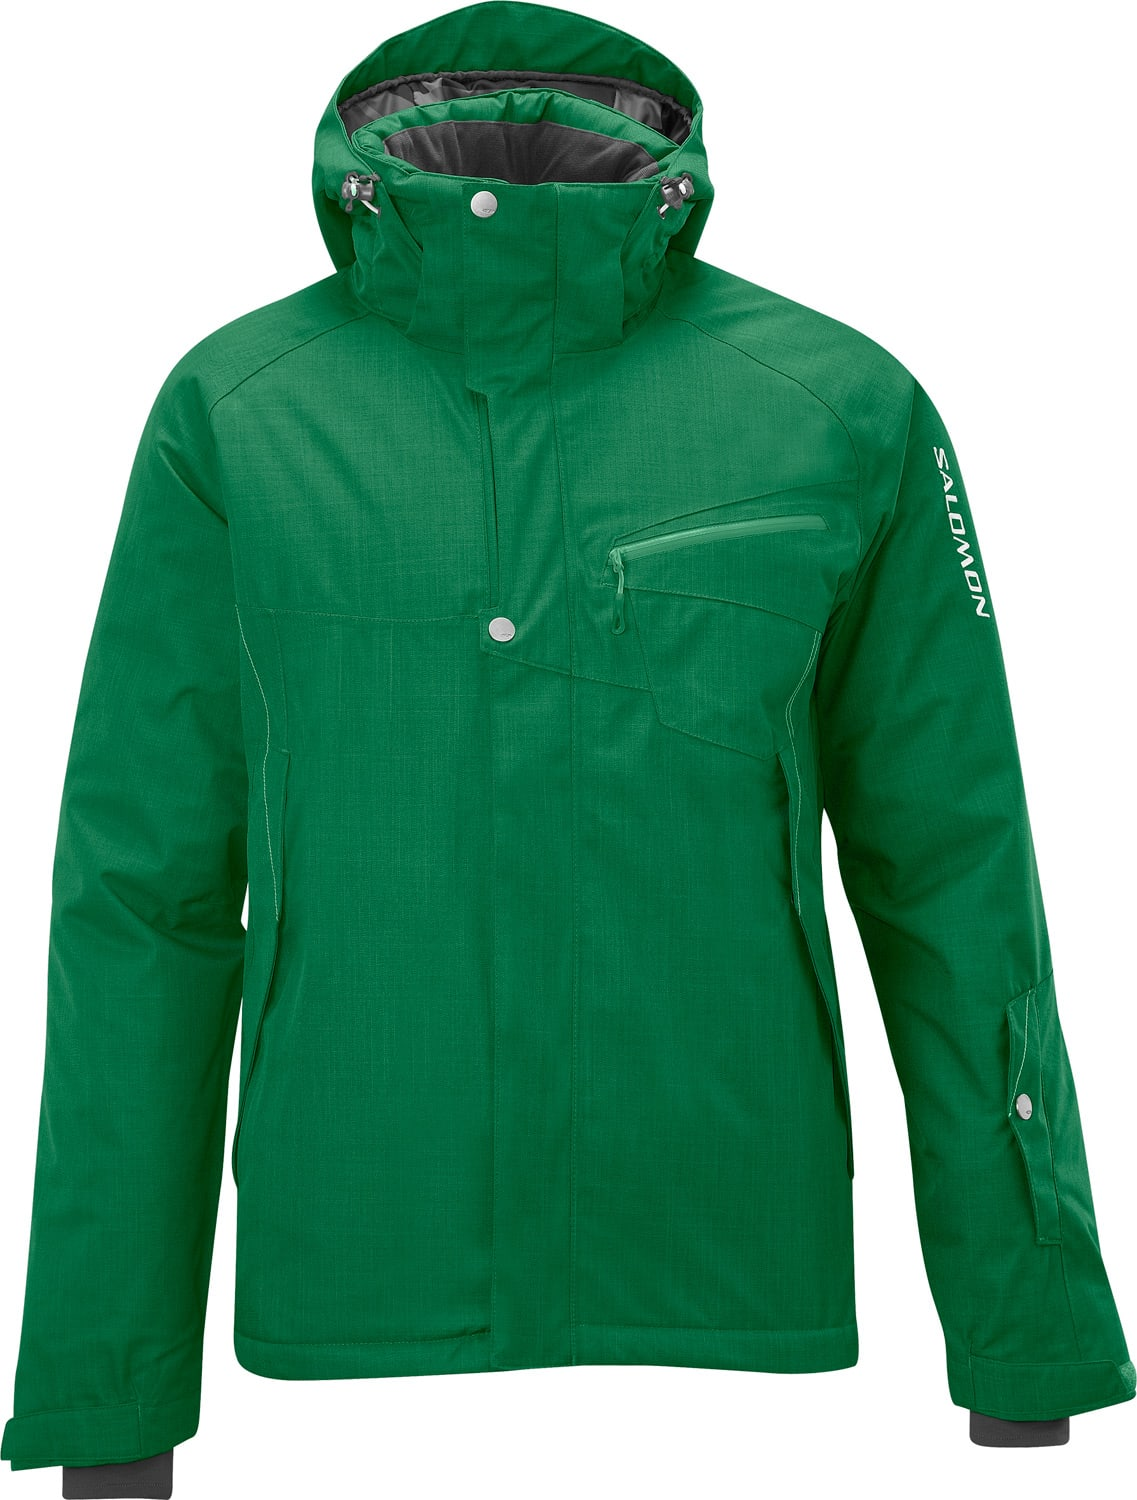 Shop for Salomon Fantasy II Ski Jacket Pineneedle - Men's